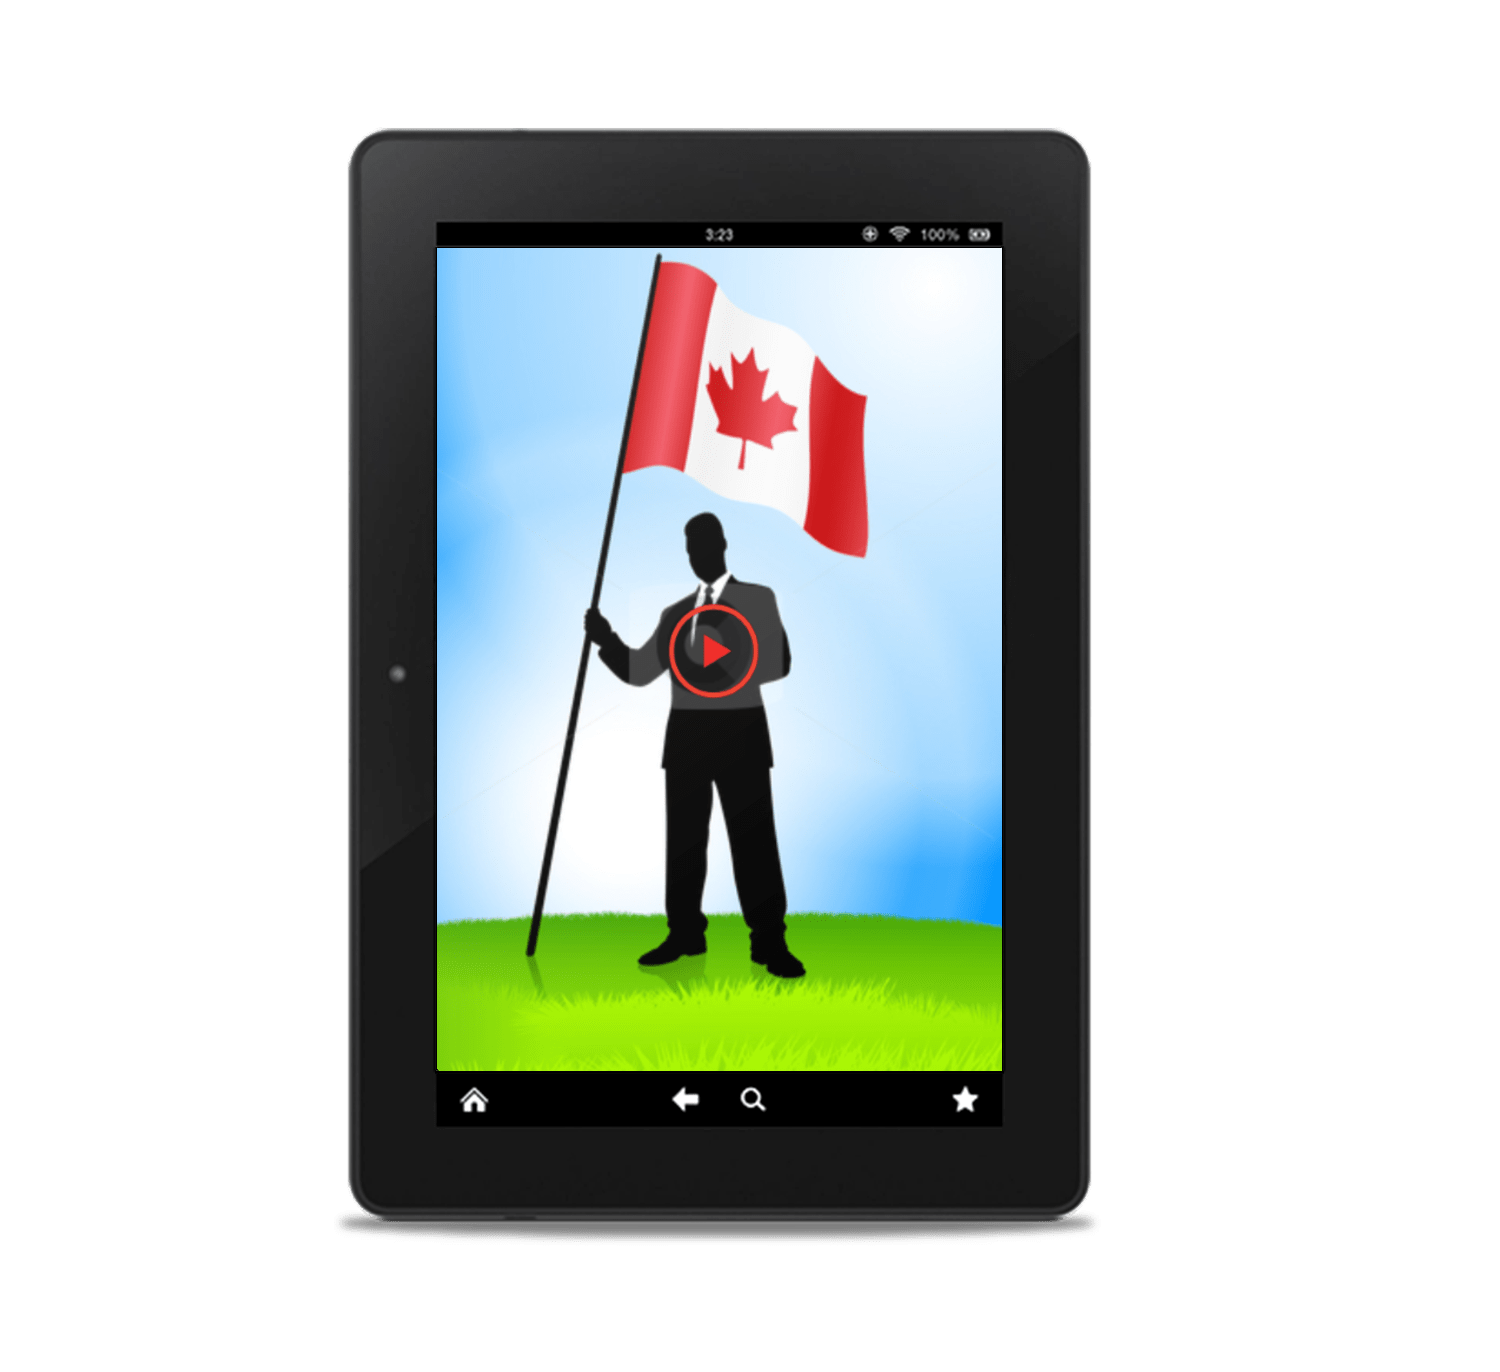 Migrate To Canada Video Overlay